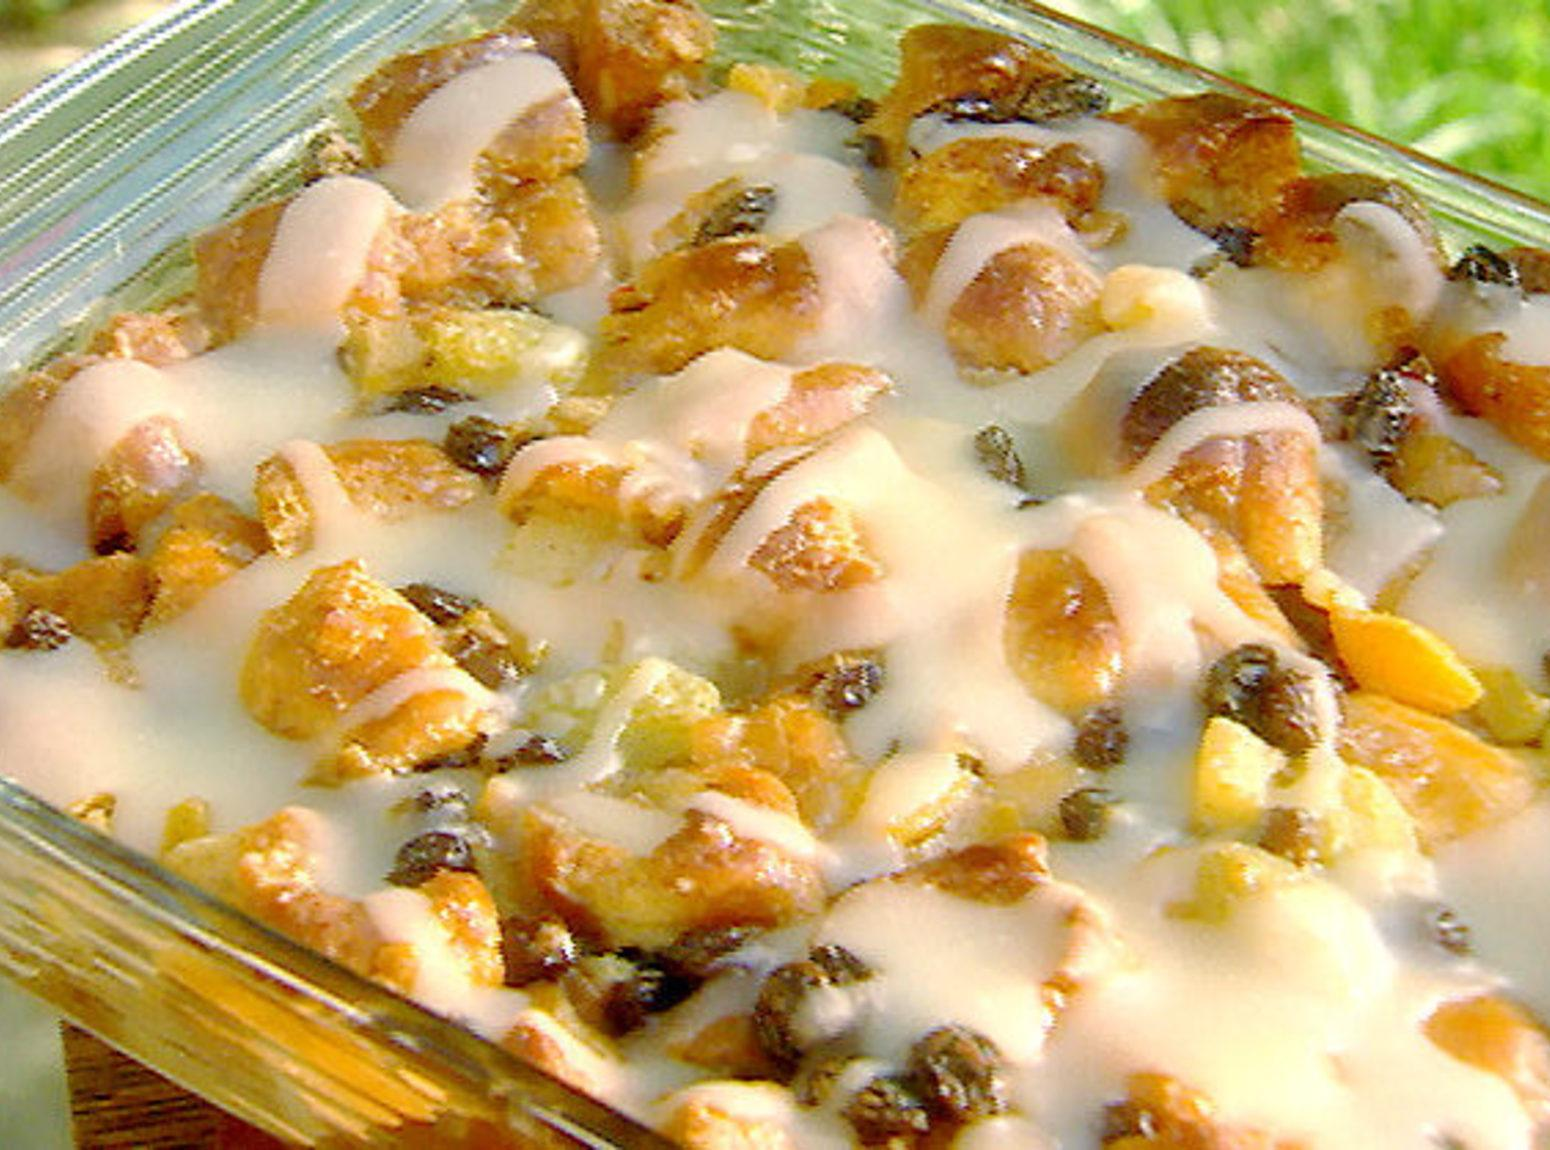 Krispy Kreme Bread Pudding with Rum Sauce Recipe | Just A Pinch ...